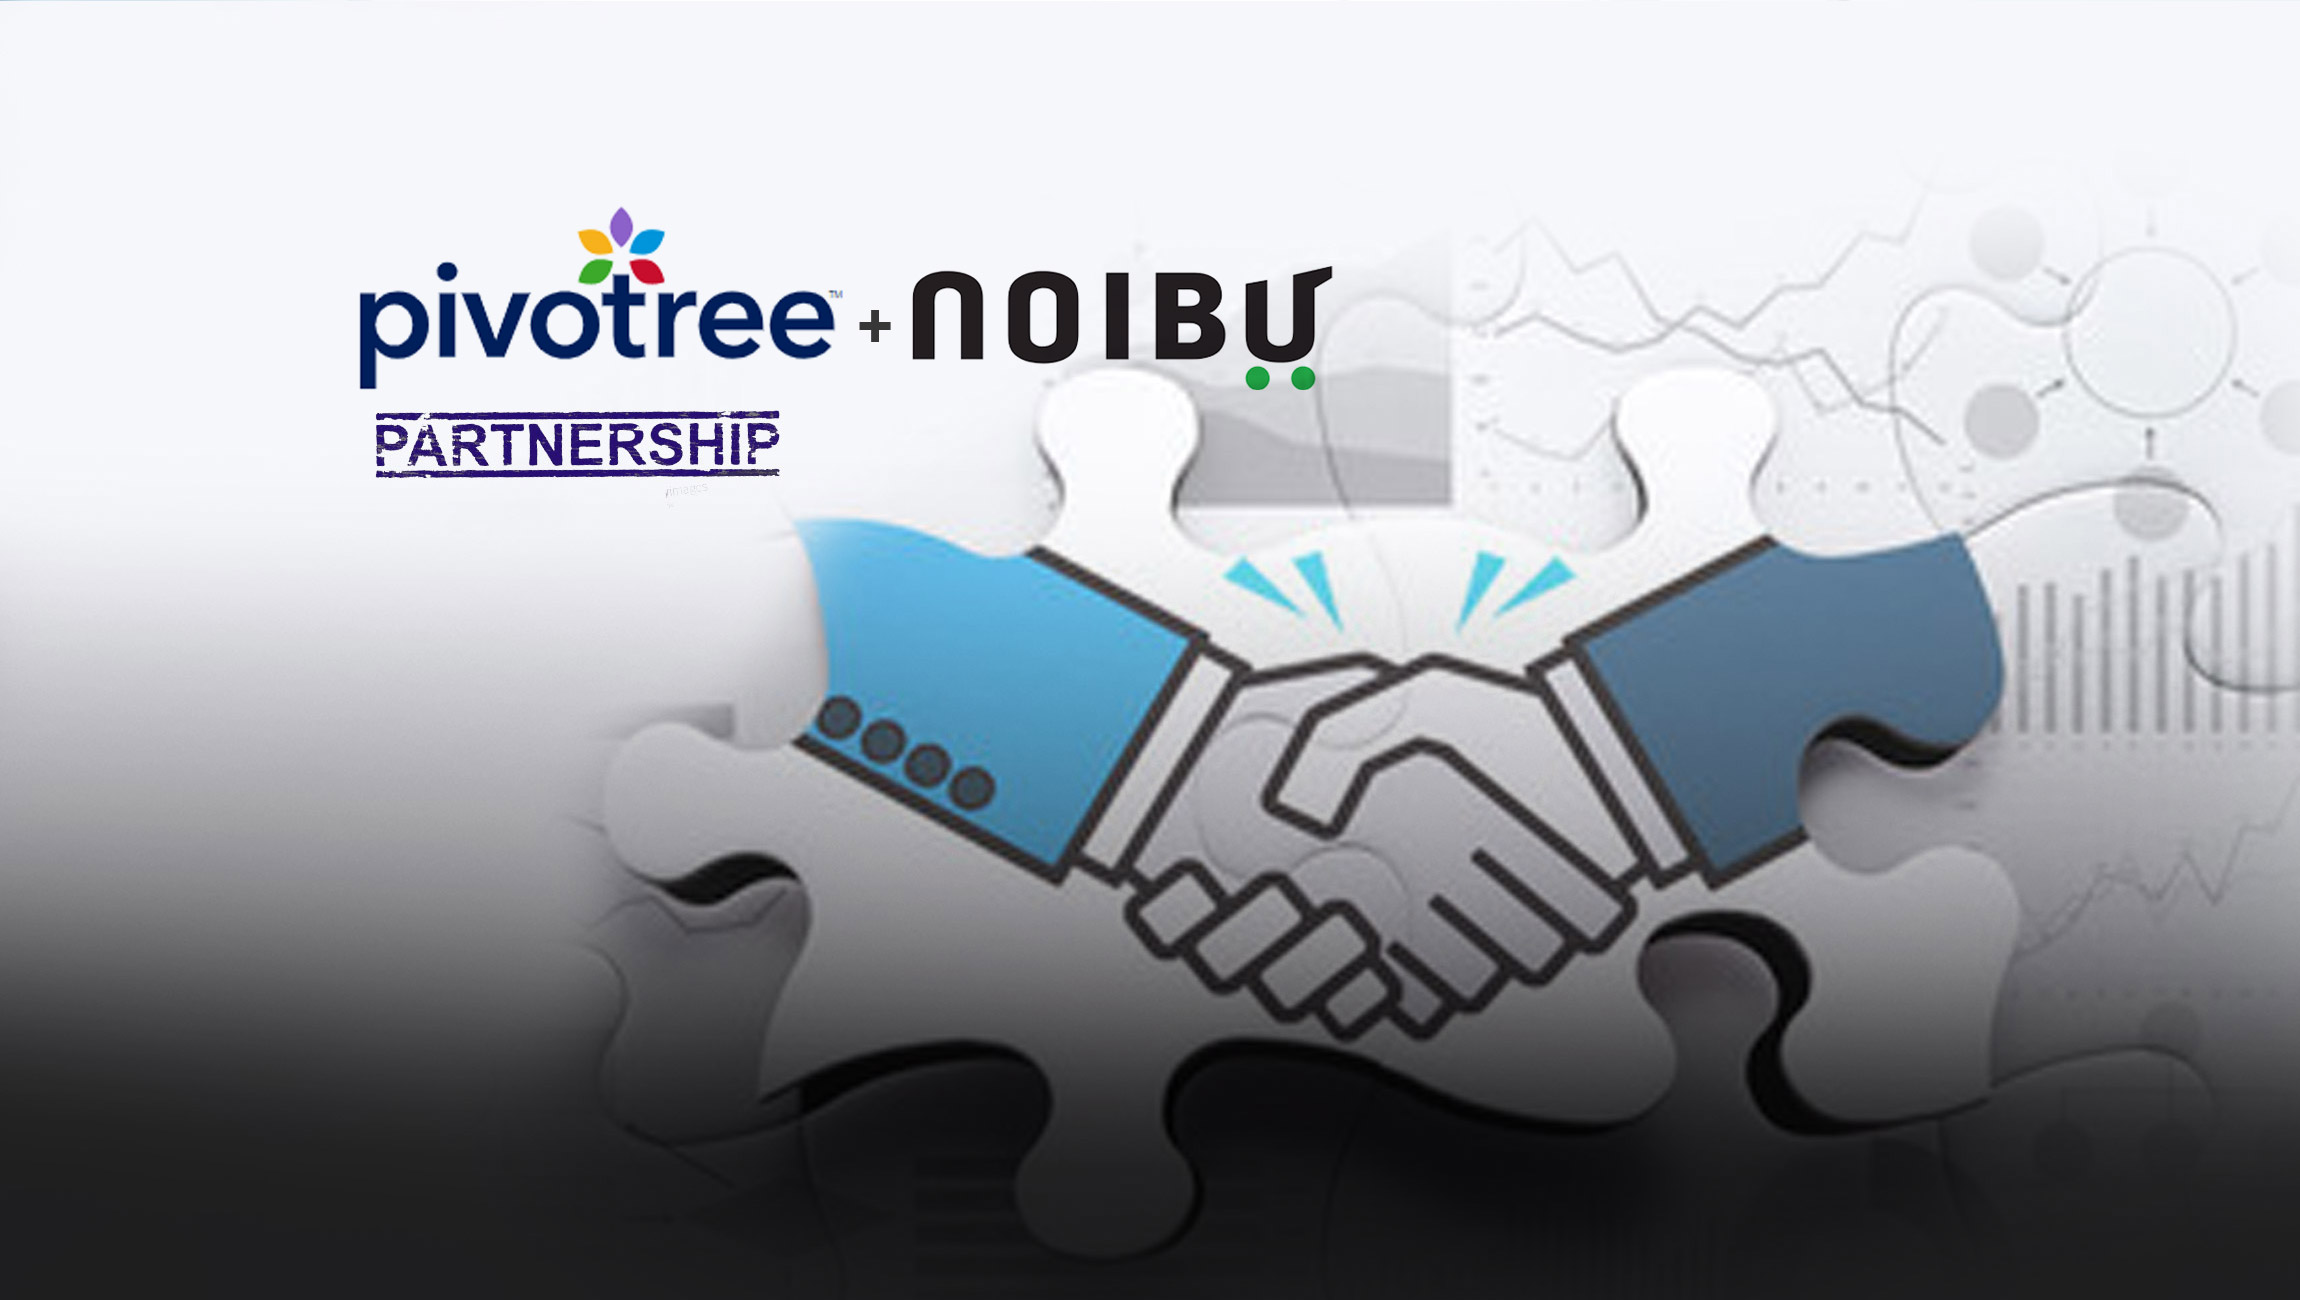 Pivotree And Noibu Announce Strategic Partnership For Comprehensive Ecommerce Error Monitoring And Resolution